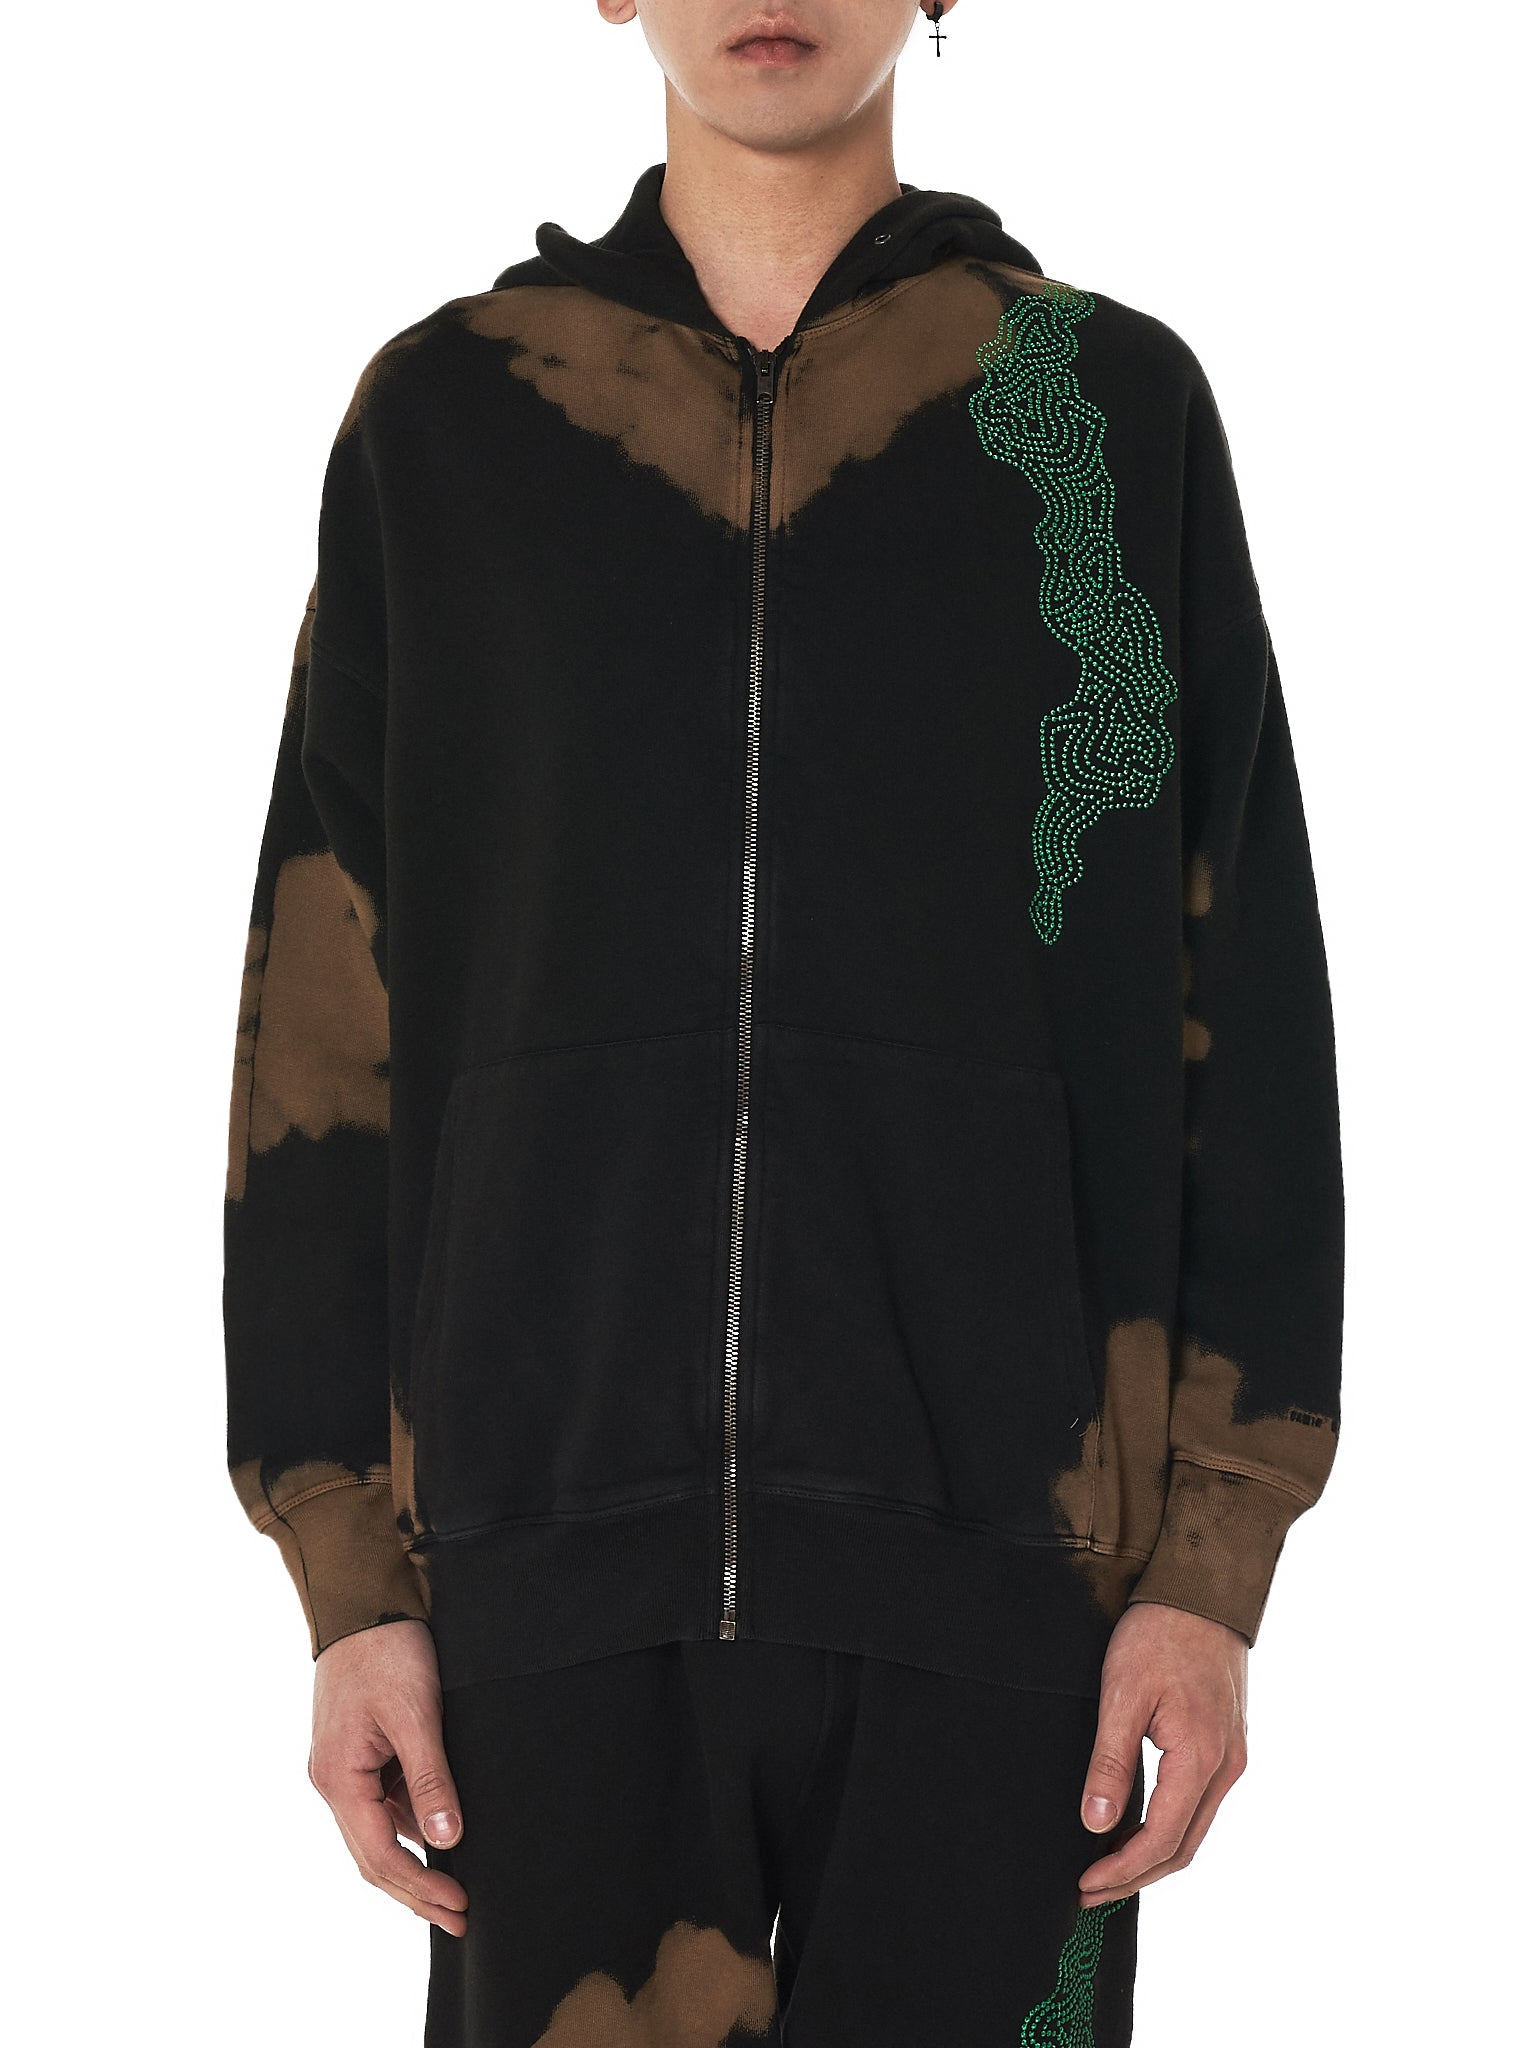 Damir doma zipup bleached hoodie - H.Lorenzo front